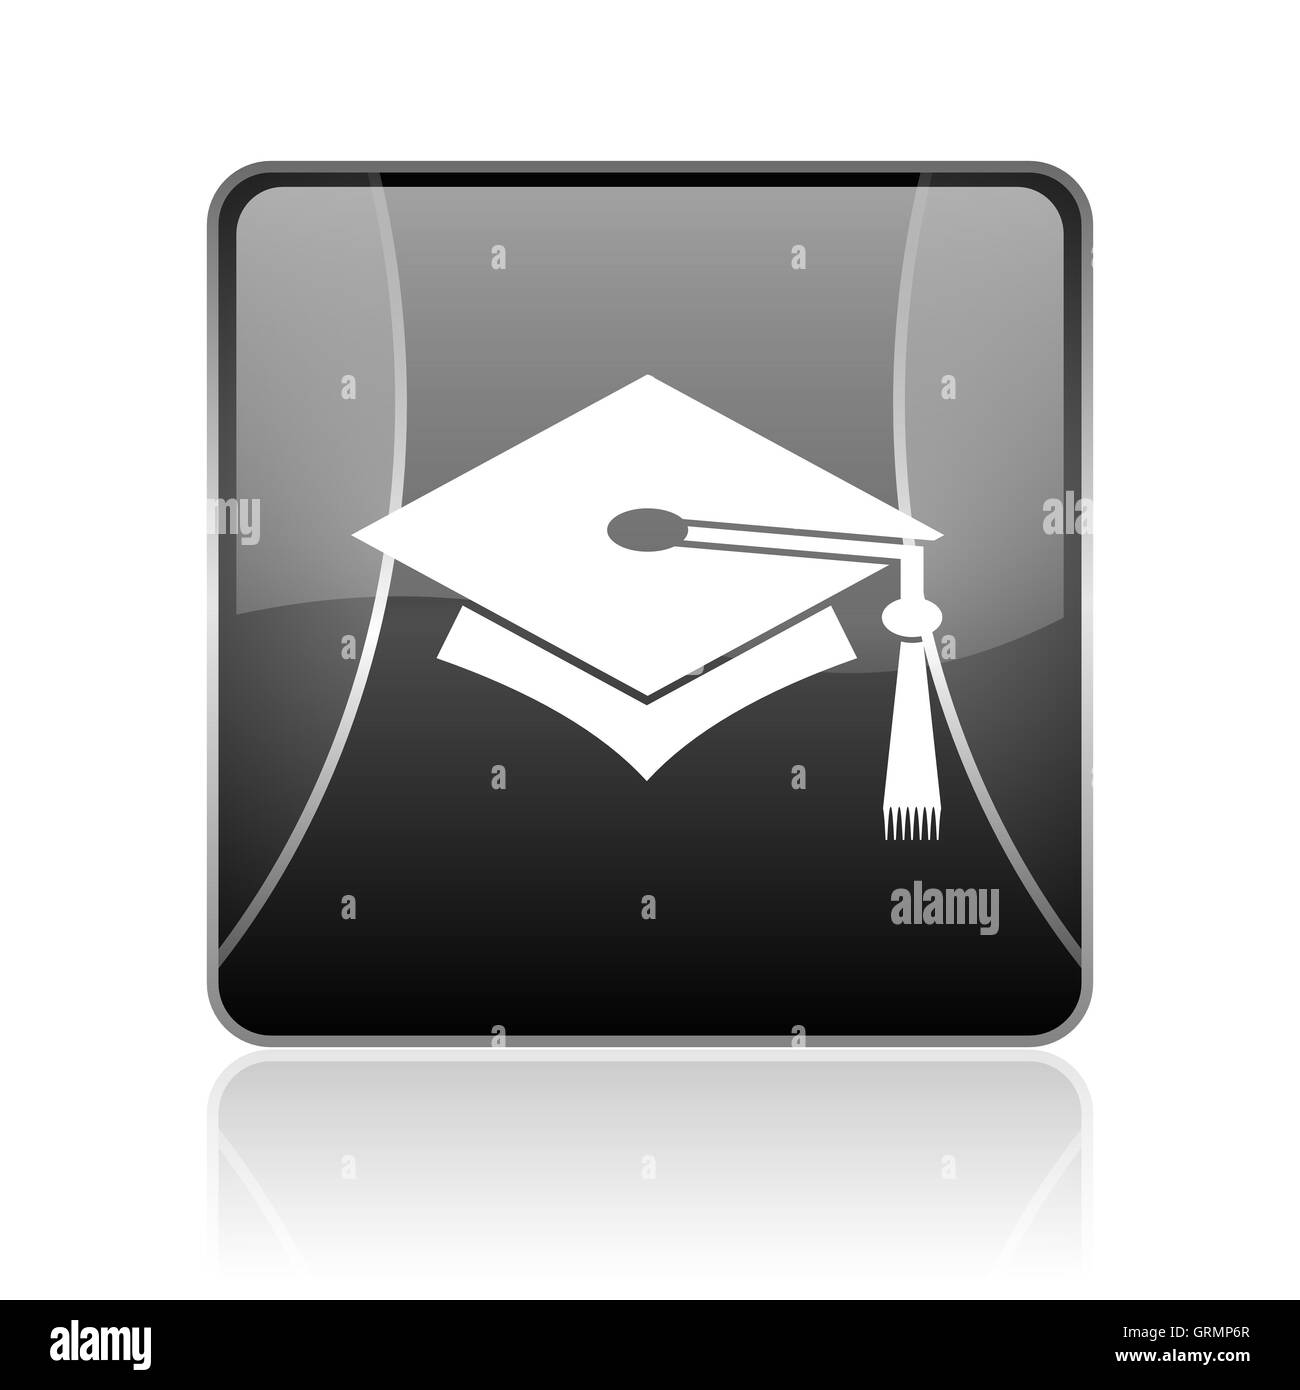 Toga Black and White Stock Photos & Images - Alamy